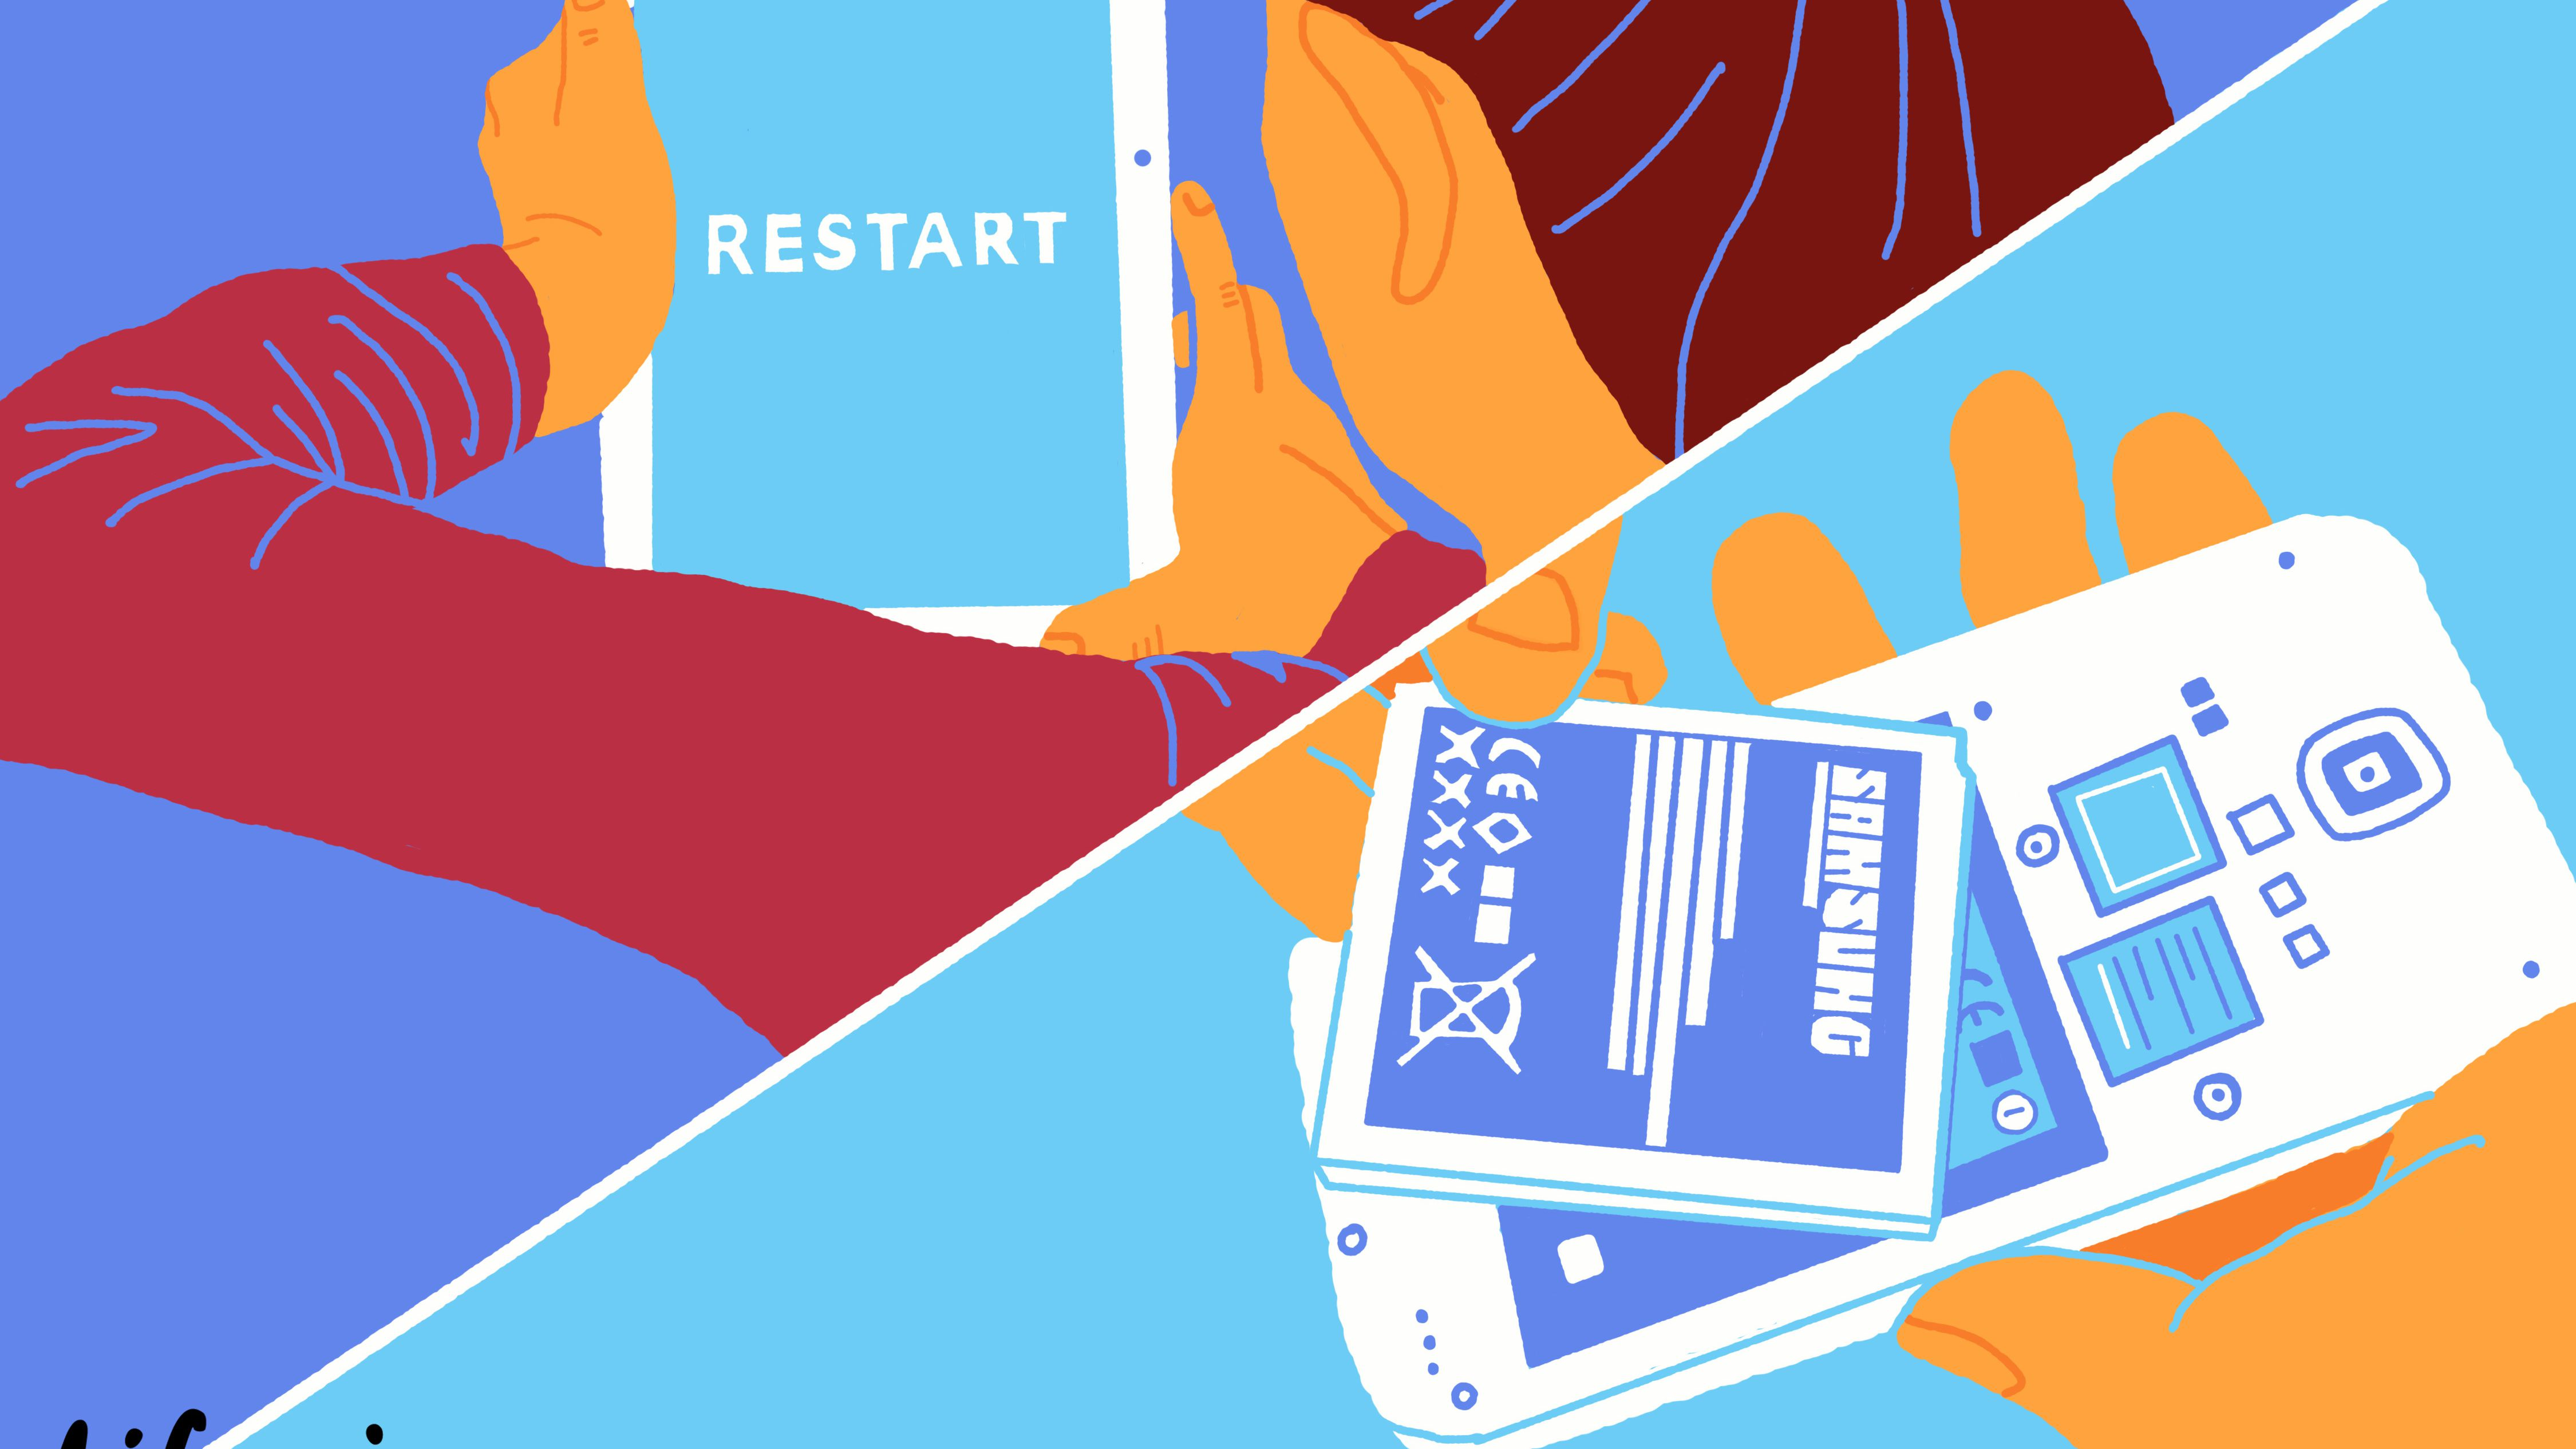 How to Reboot an Android Smartphone or Tablet